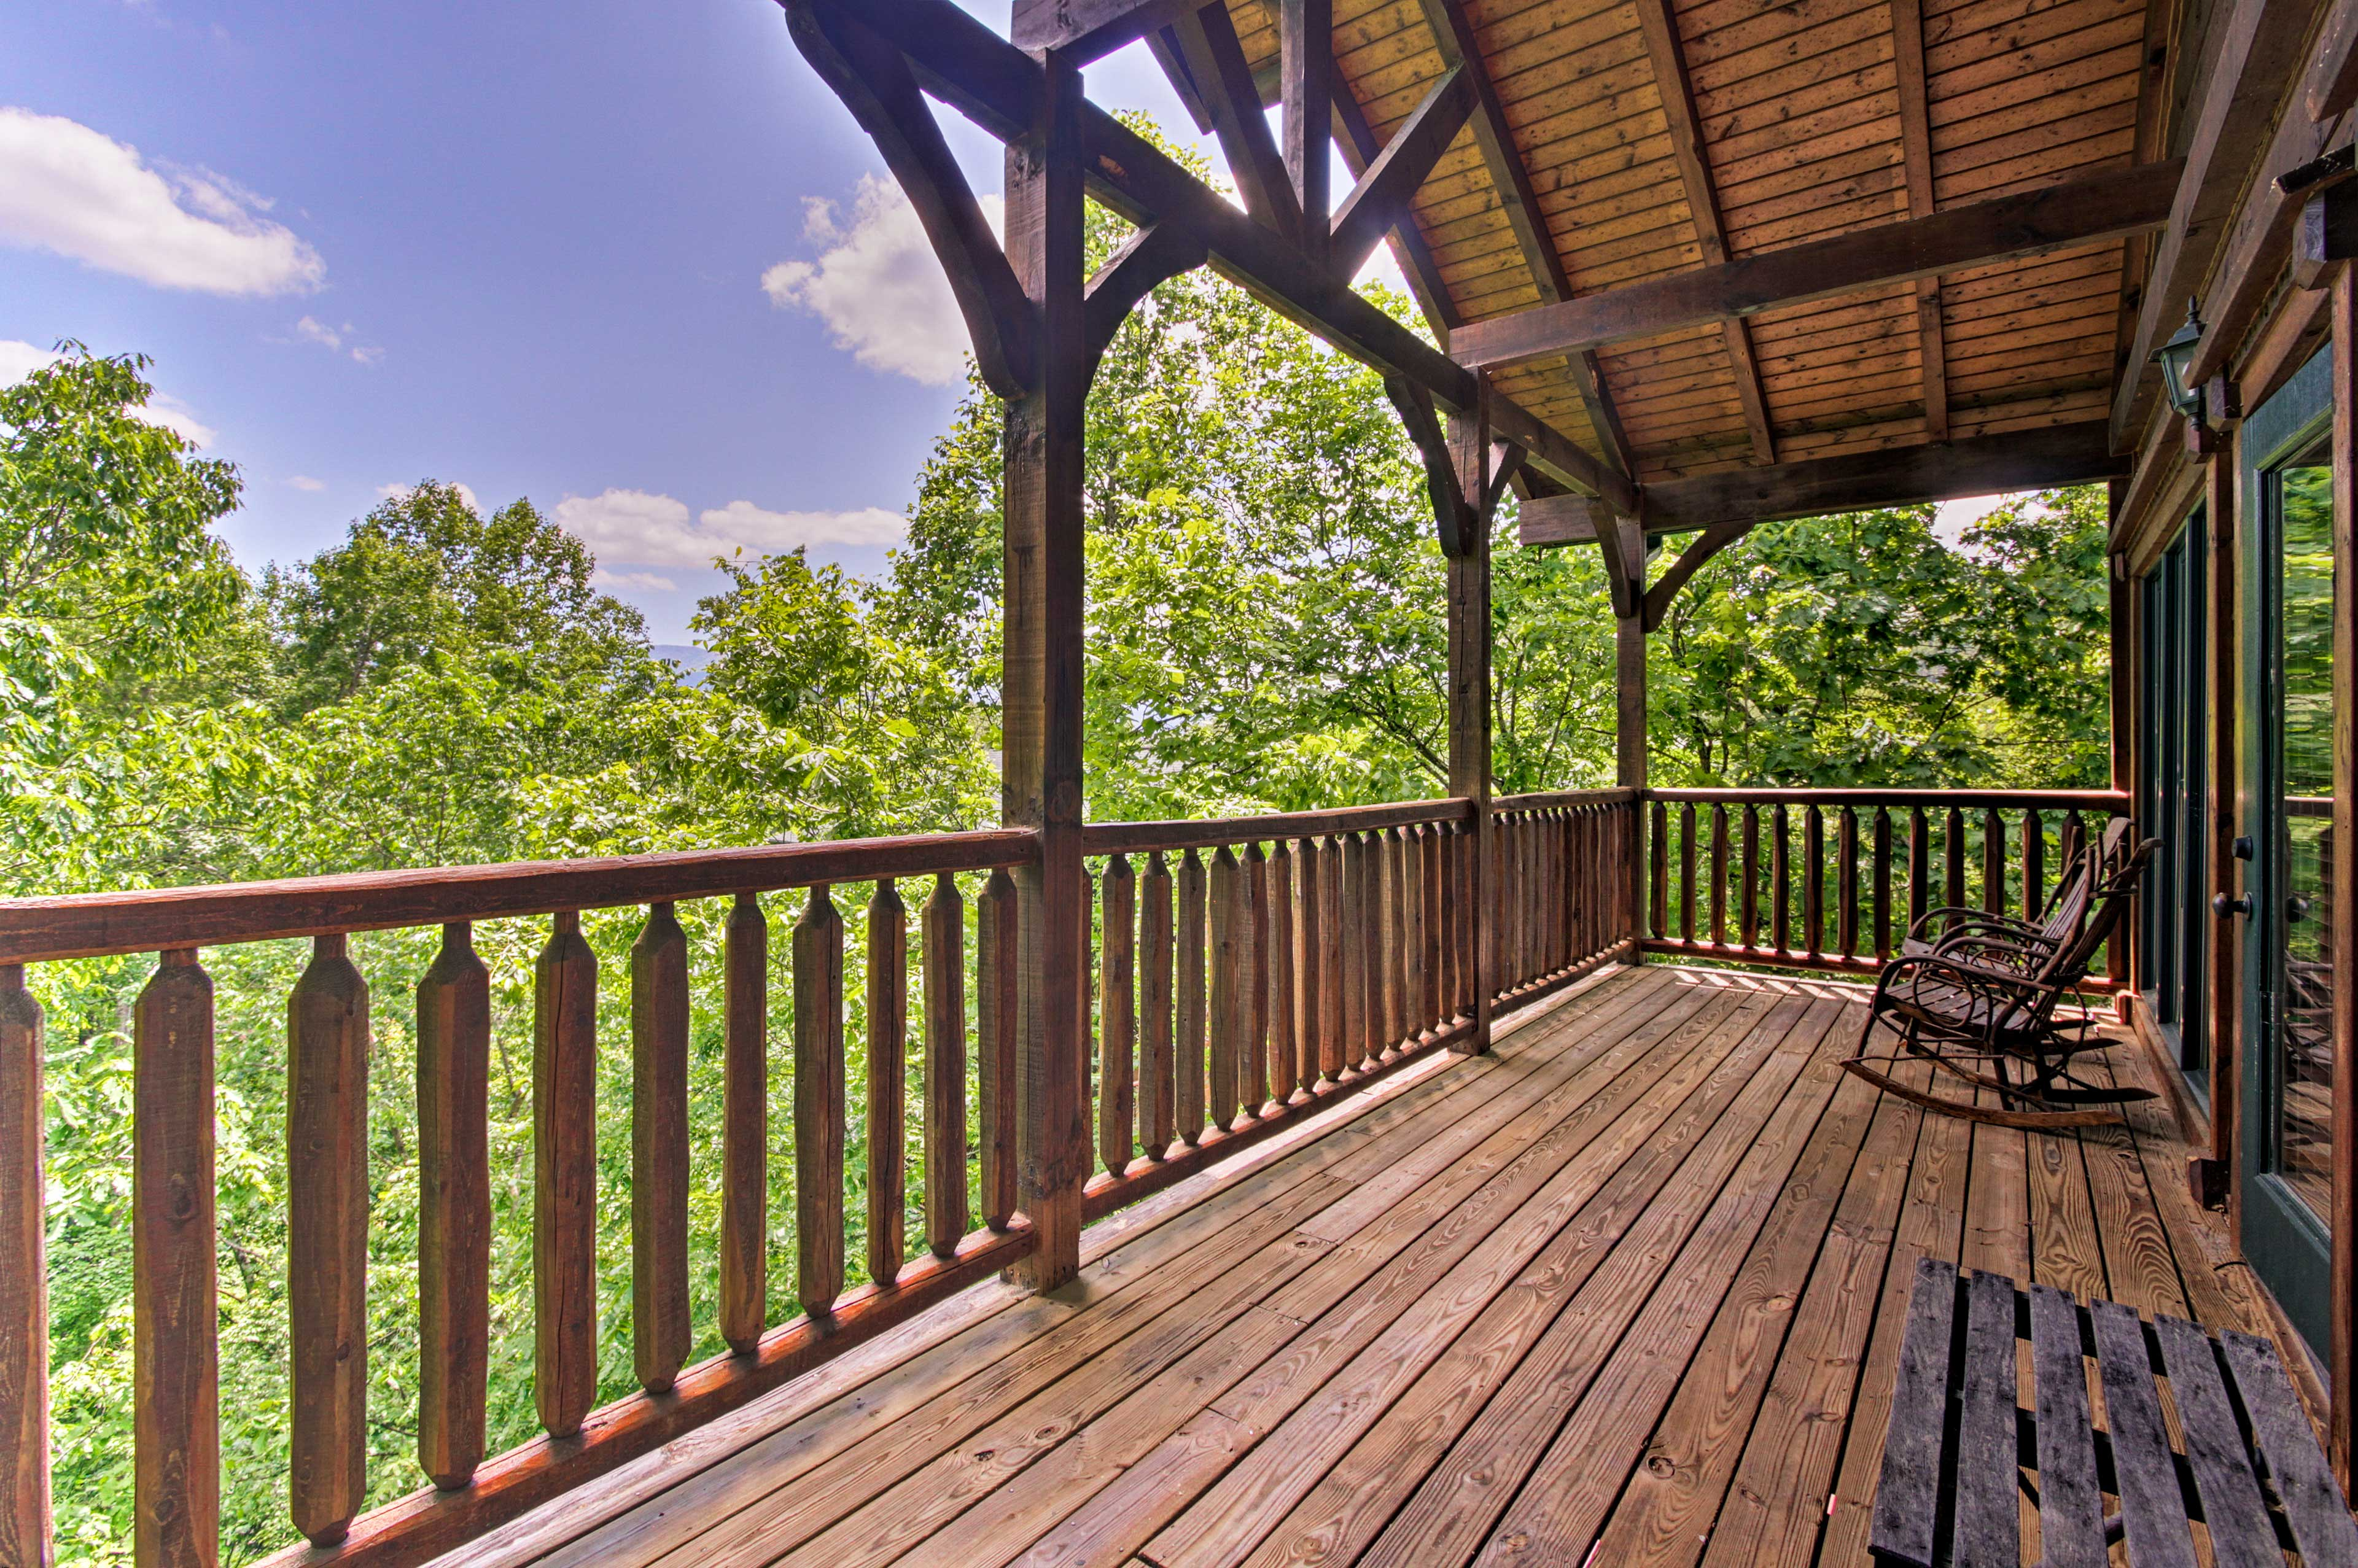 Sip your morning coffee on the upper deck in the rocking chairs.